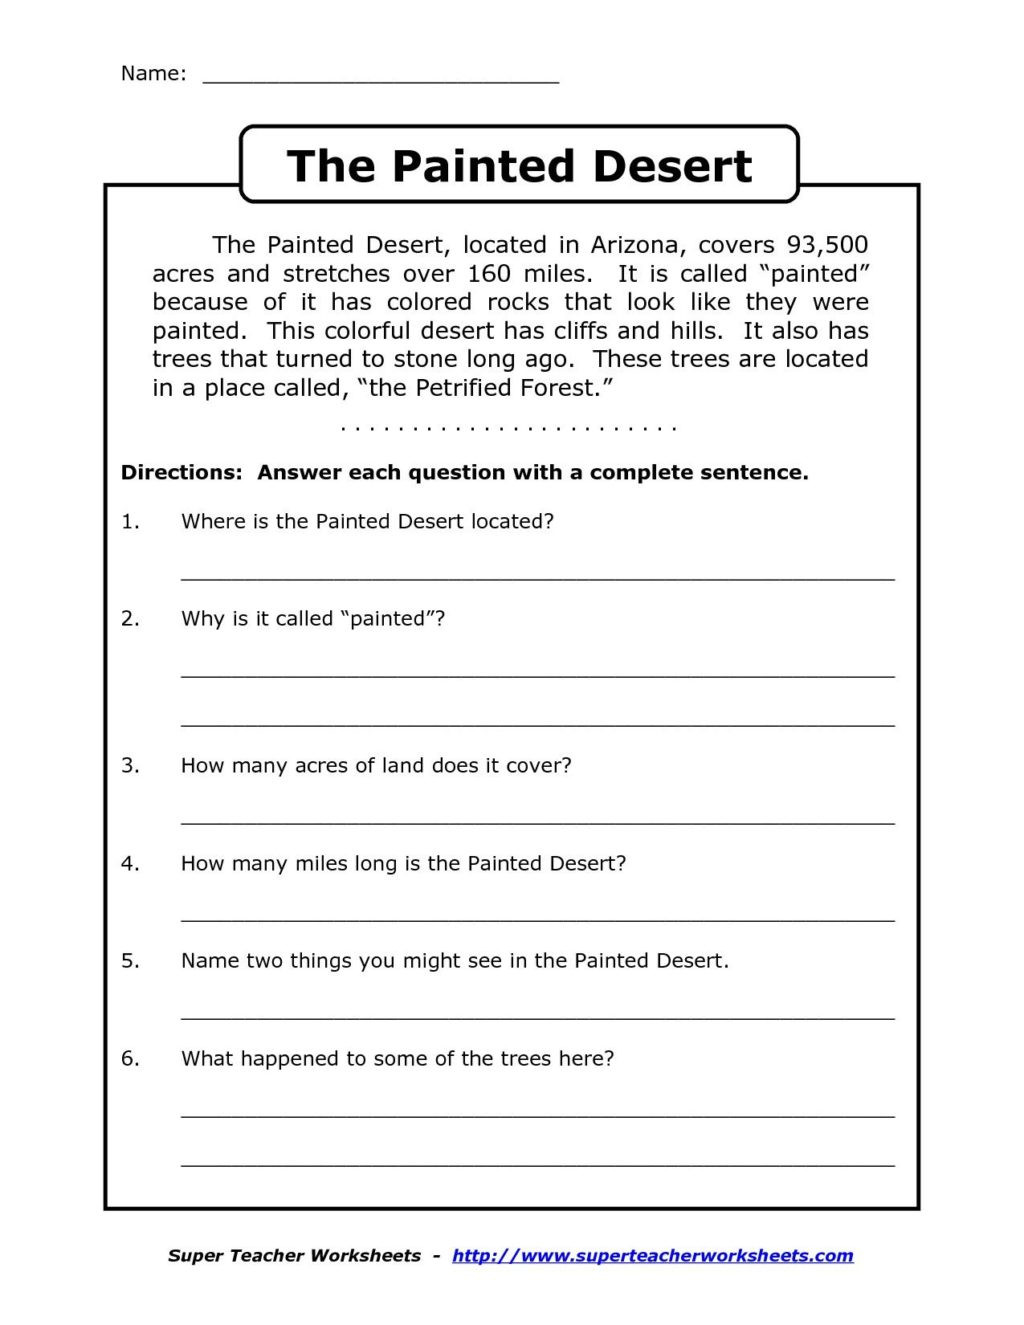 4th Grade Grammar Worksheets Pdf Worksheet Prehensions for Grade Image Ideas Worksheet